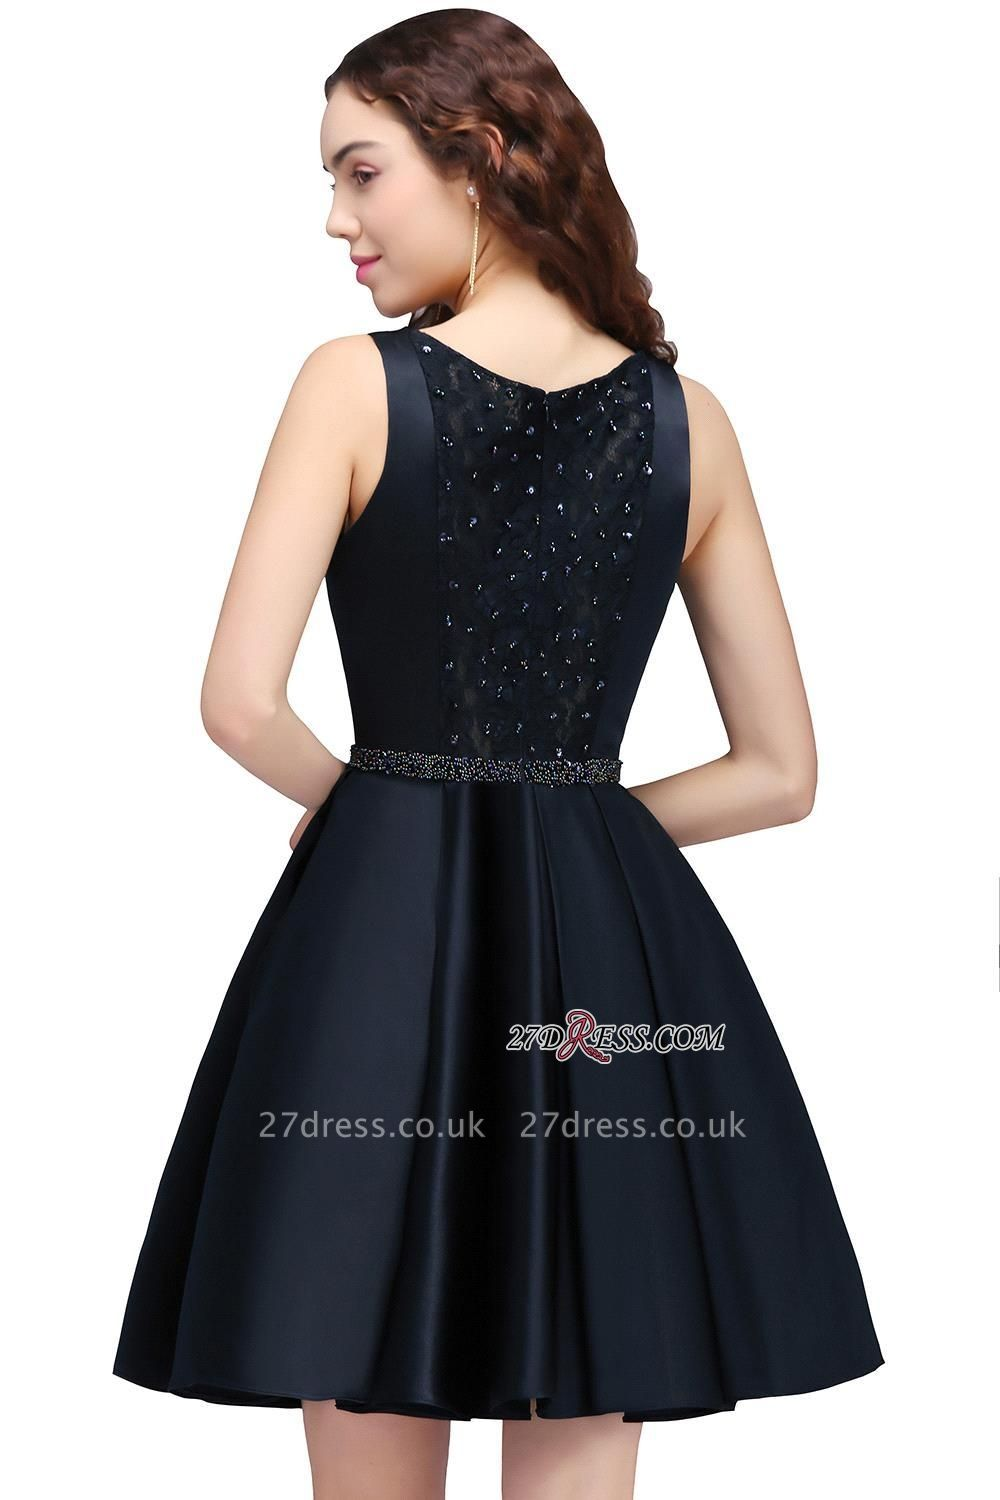 A-Line Beadings Sleeveless Sequare Black Short Homecoming Dress UKes UK